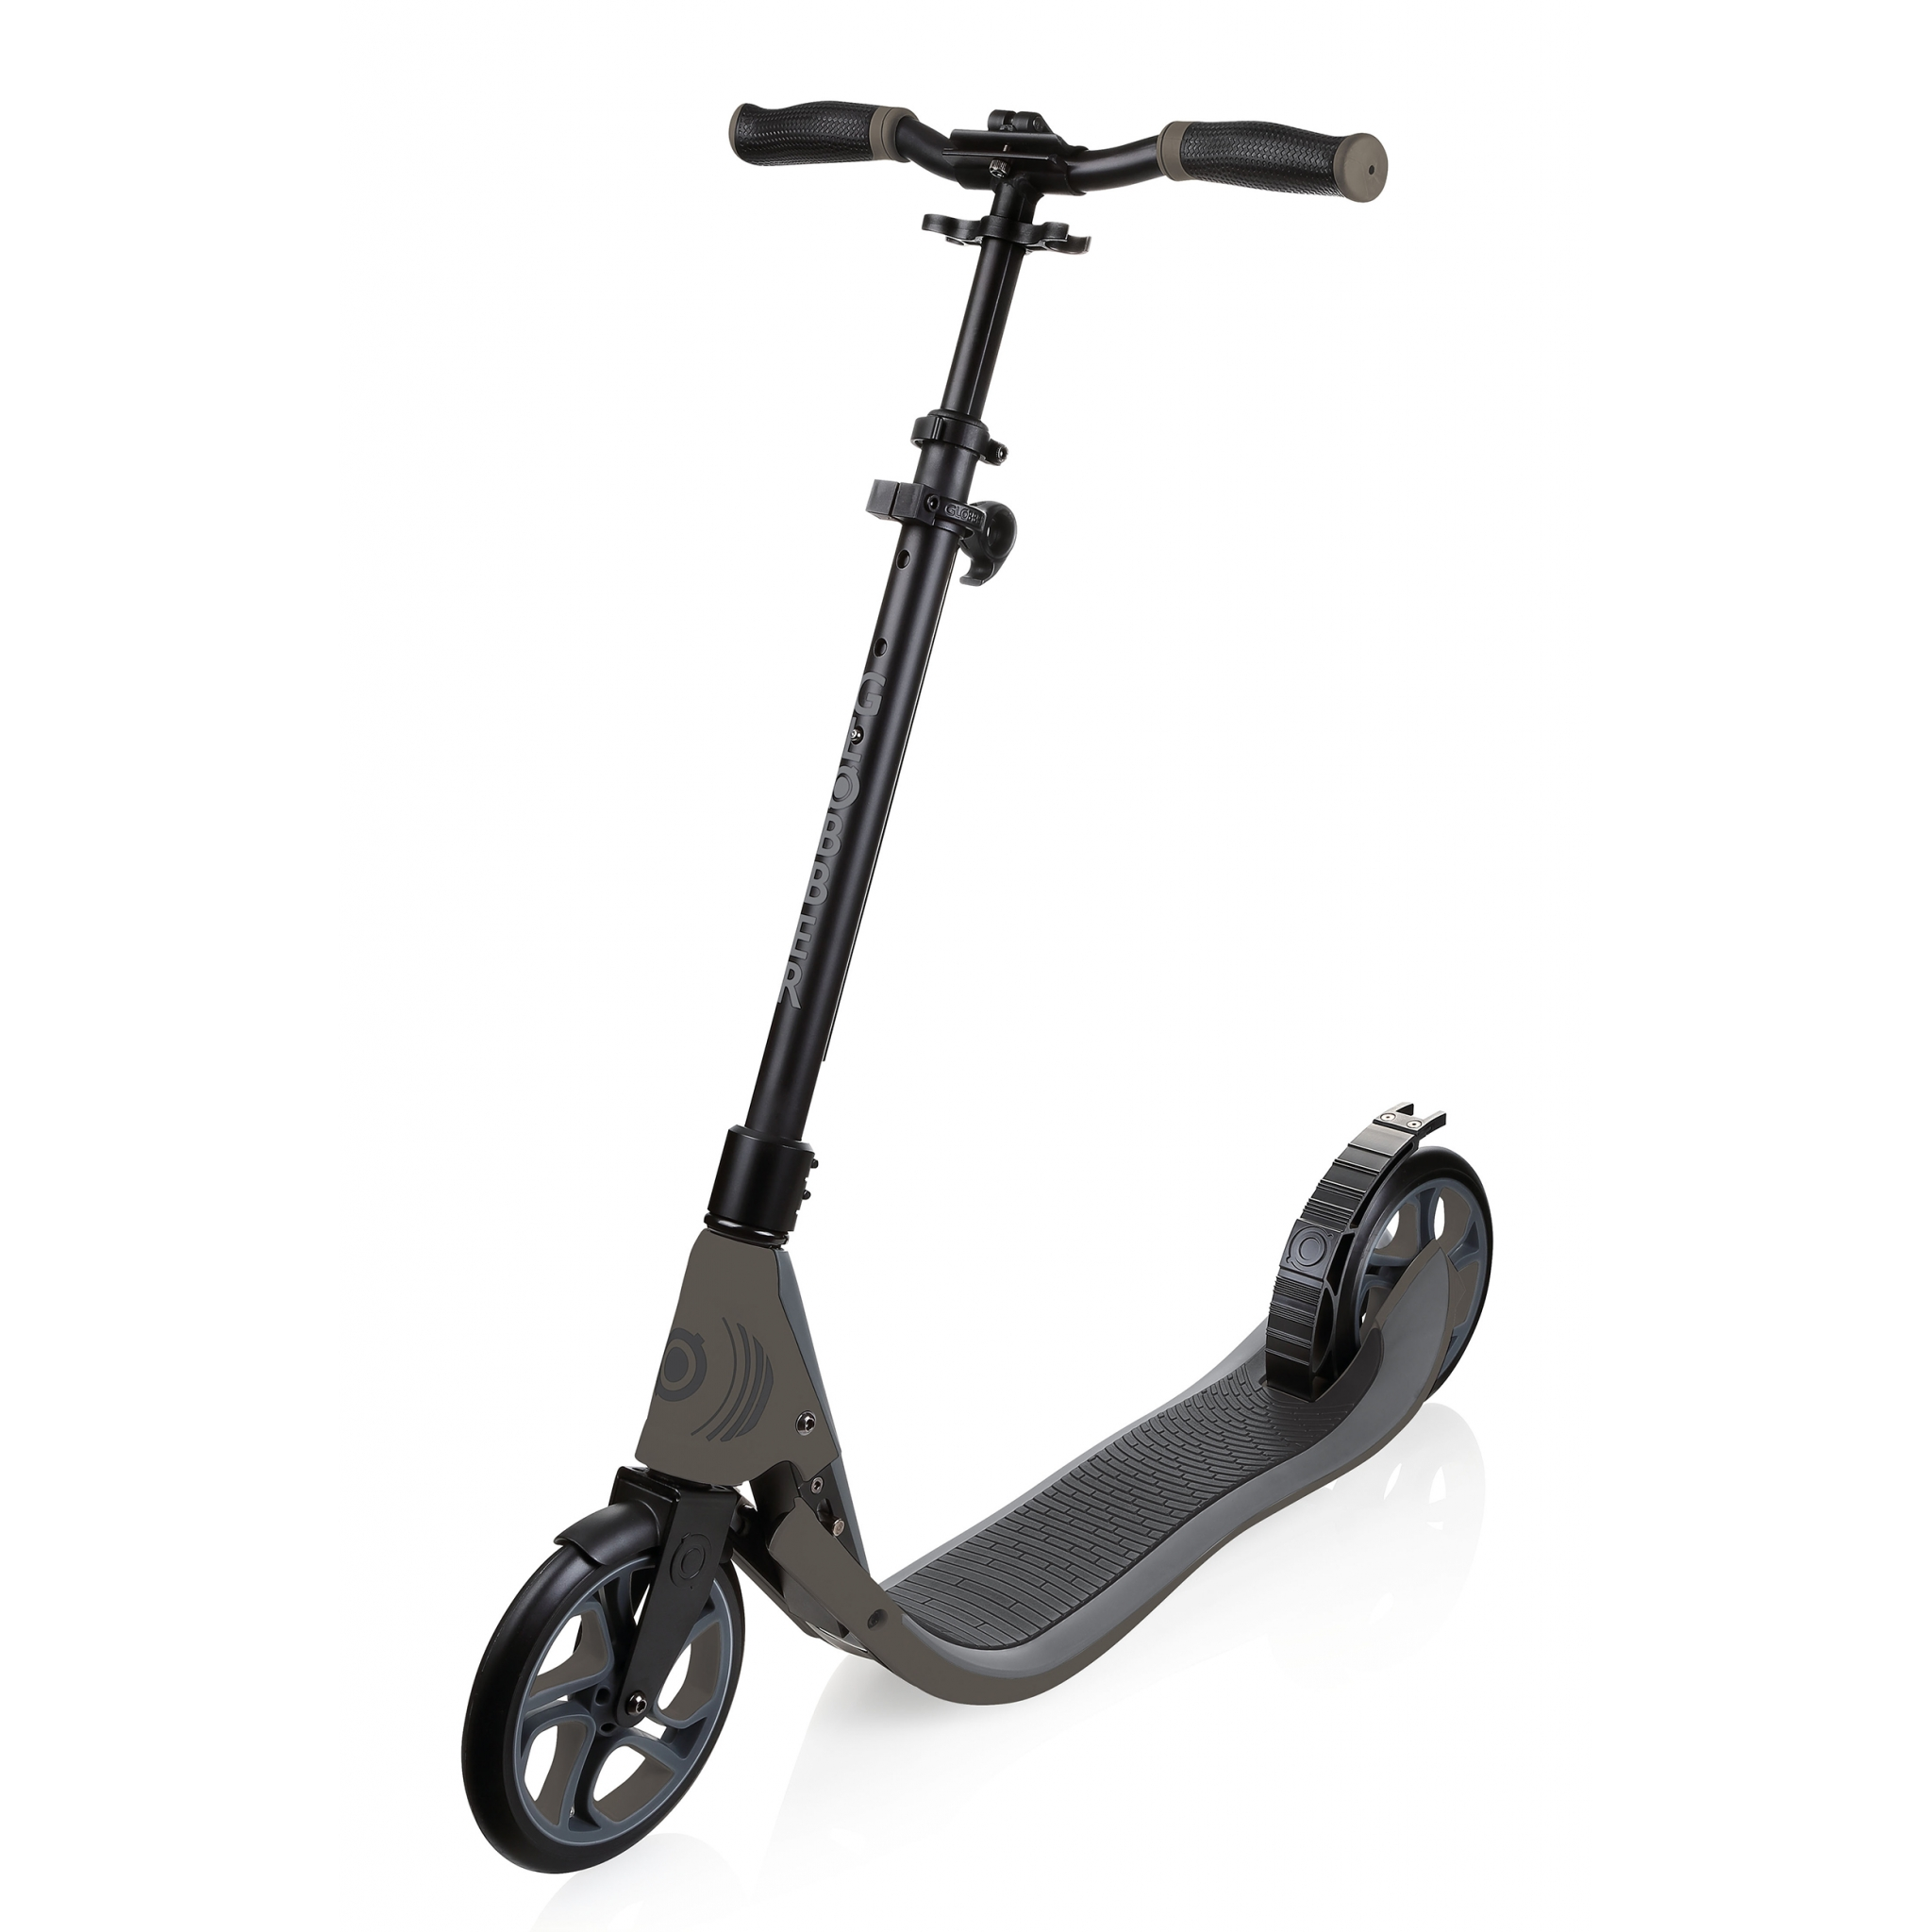 2-wheel foldable scooter for adults - Globber ONE NL 205 0